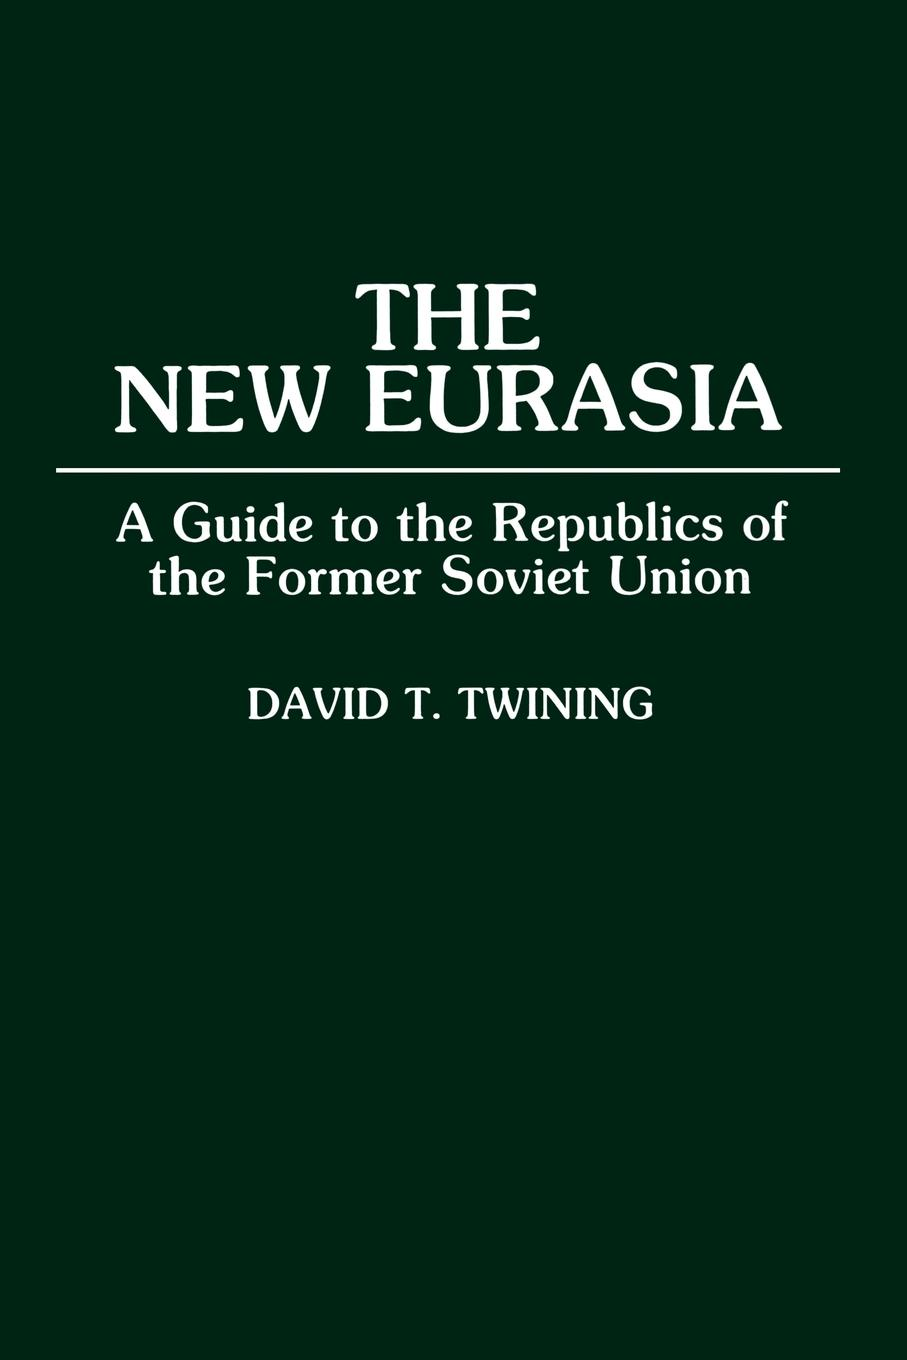 David T. Twining The New Eurasia. A Guide to the Republics of the Former Soviet Union